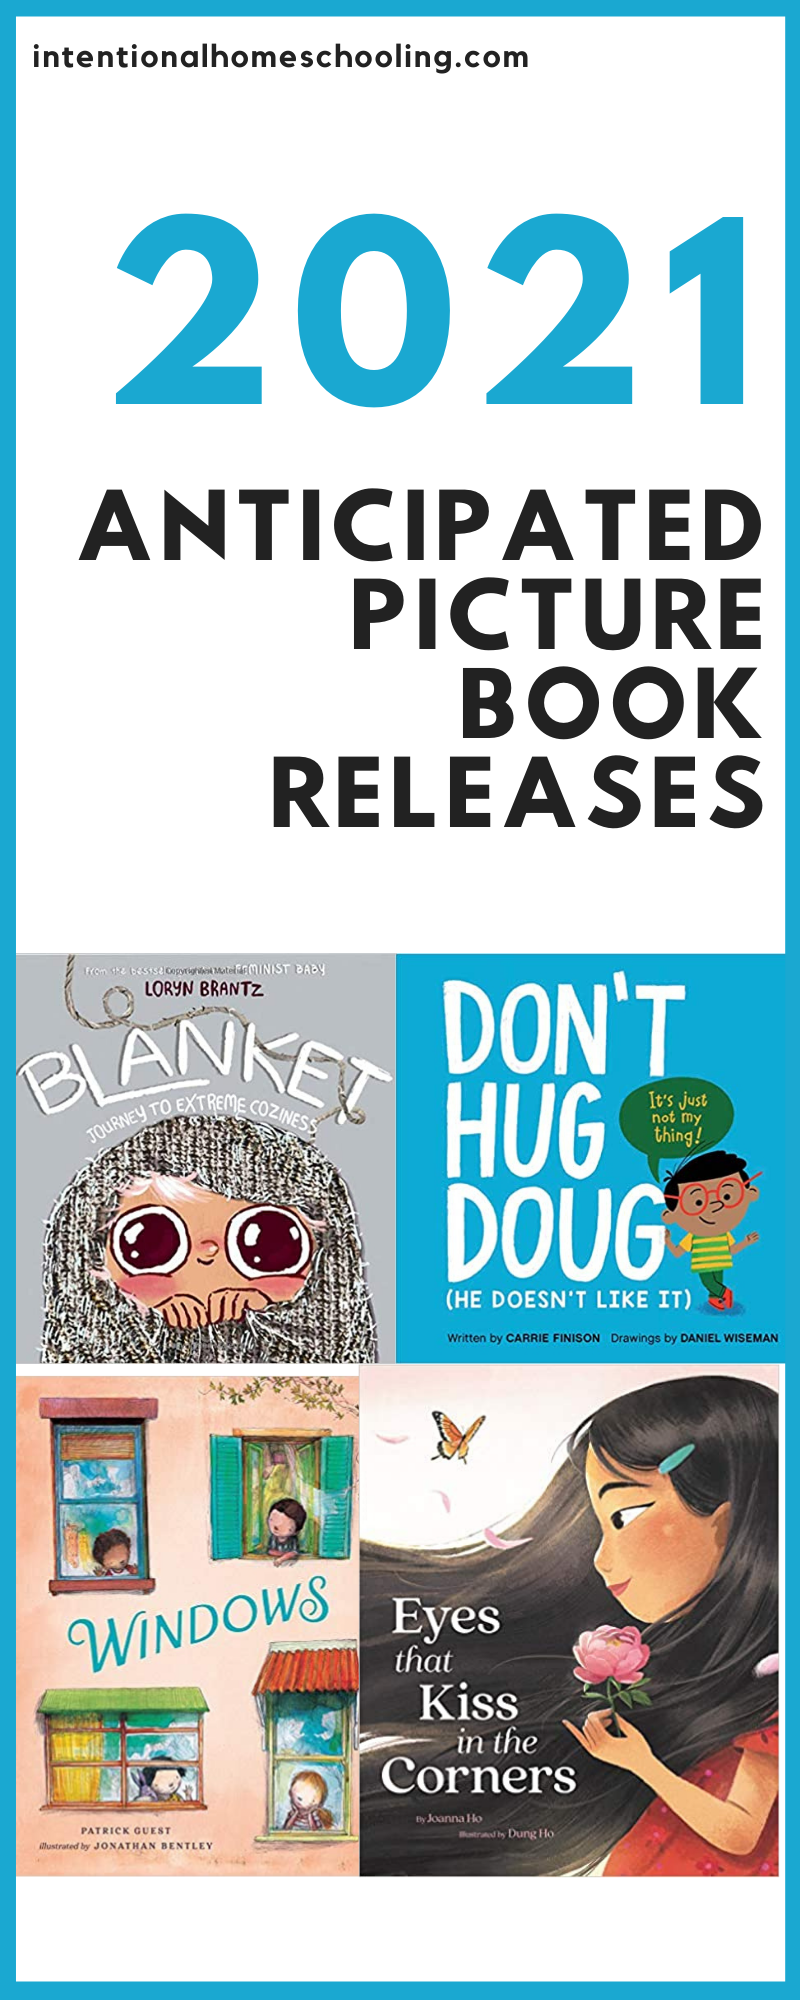 January 2021 New Picture Book Releases - Anticipated Picture Book Releases we are excited about!